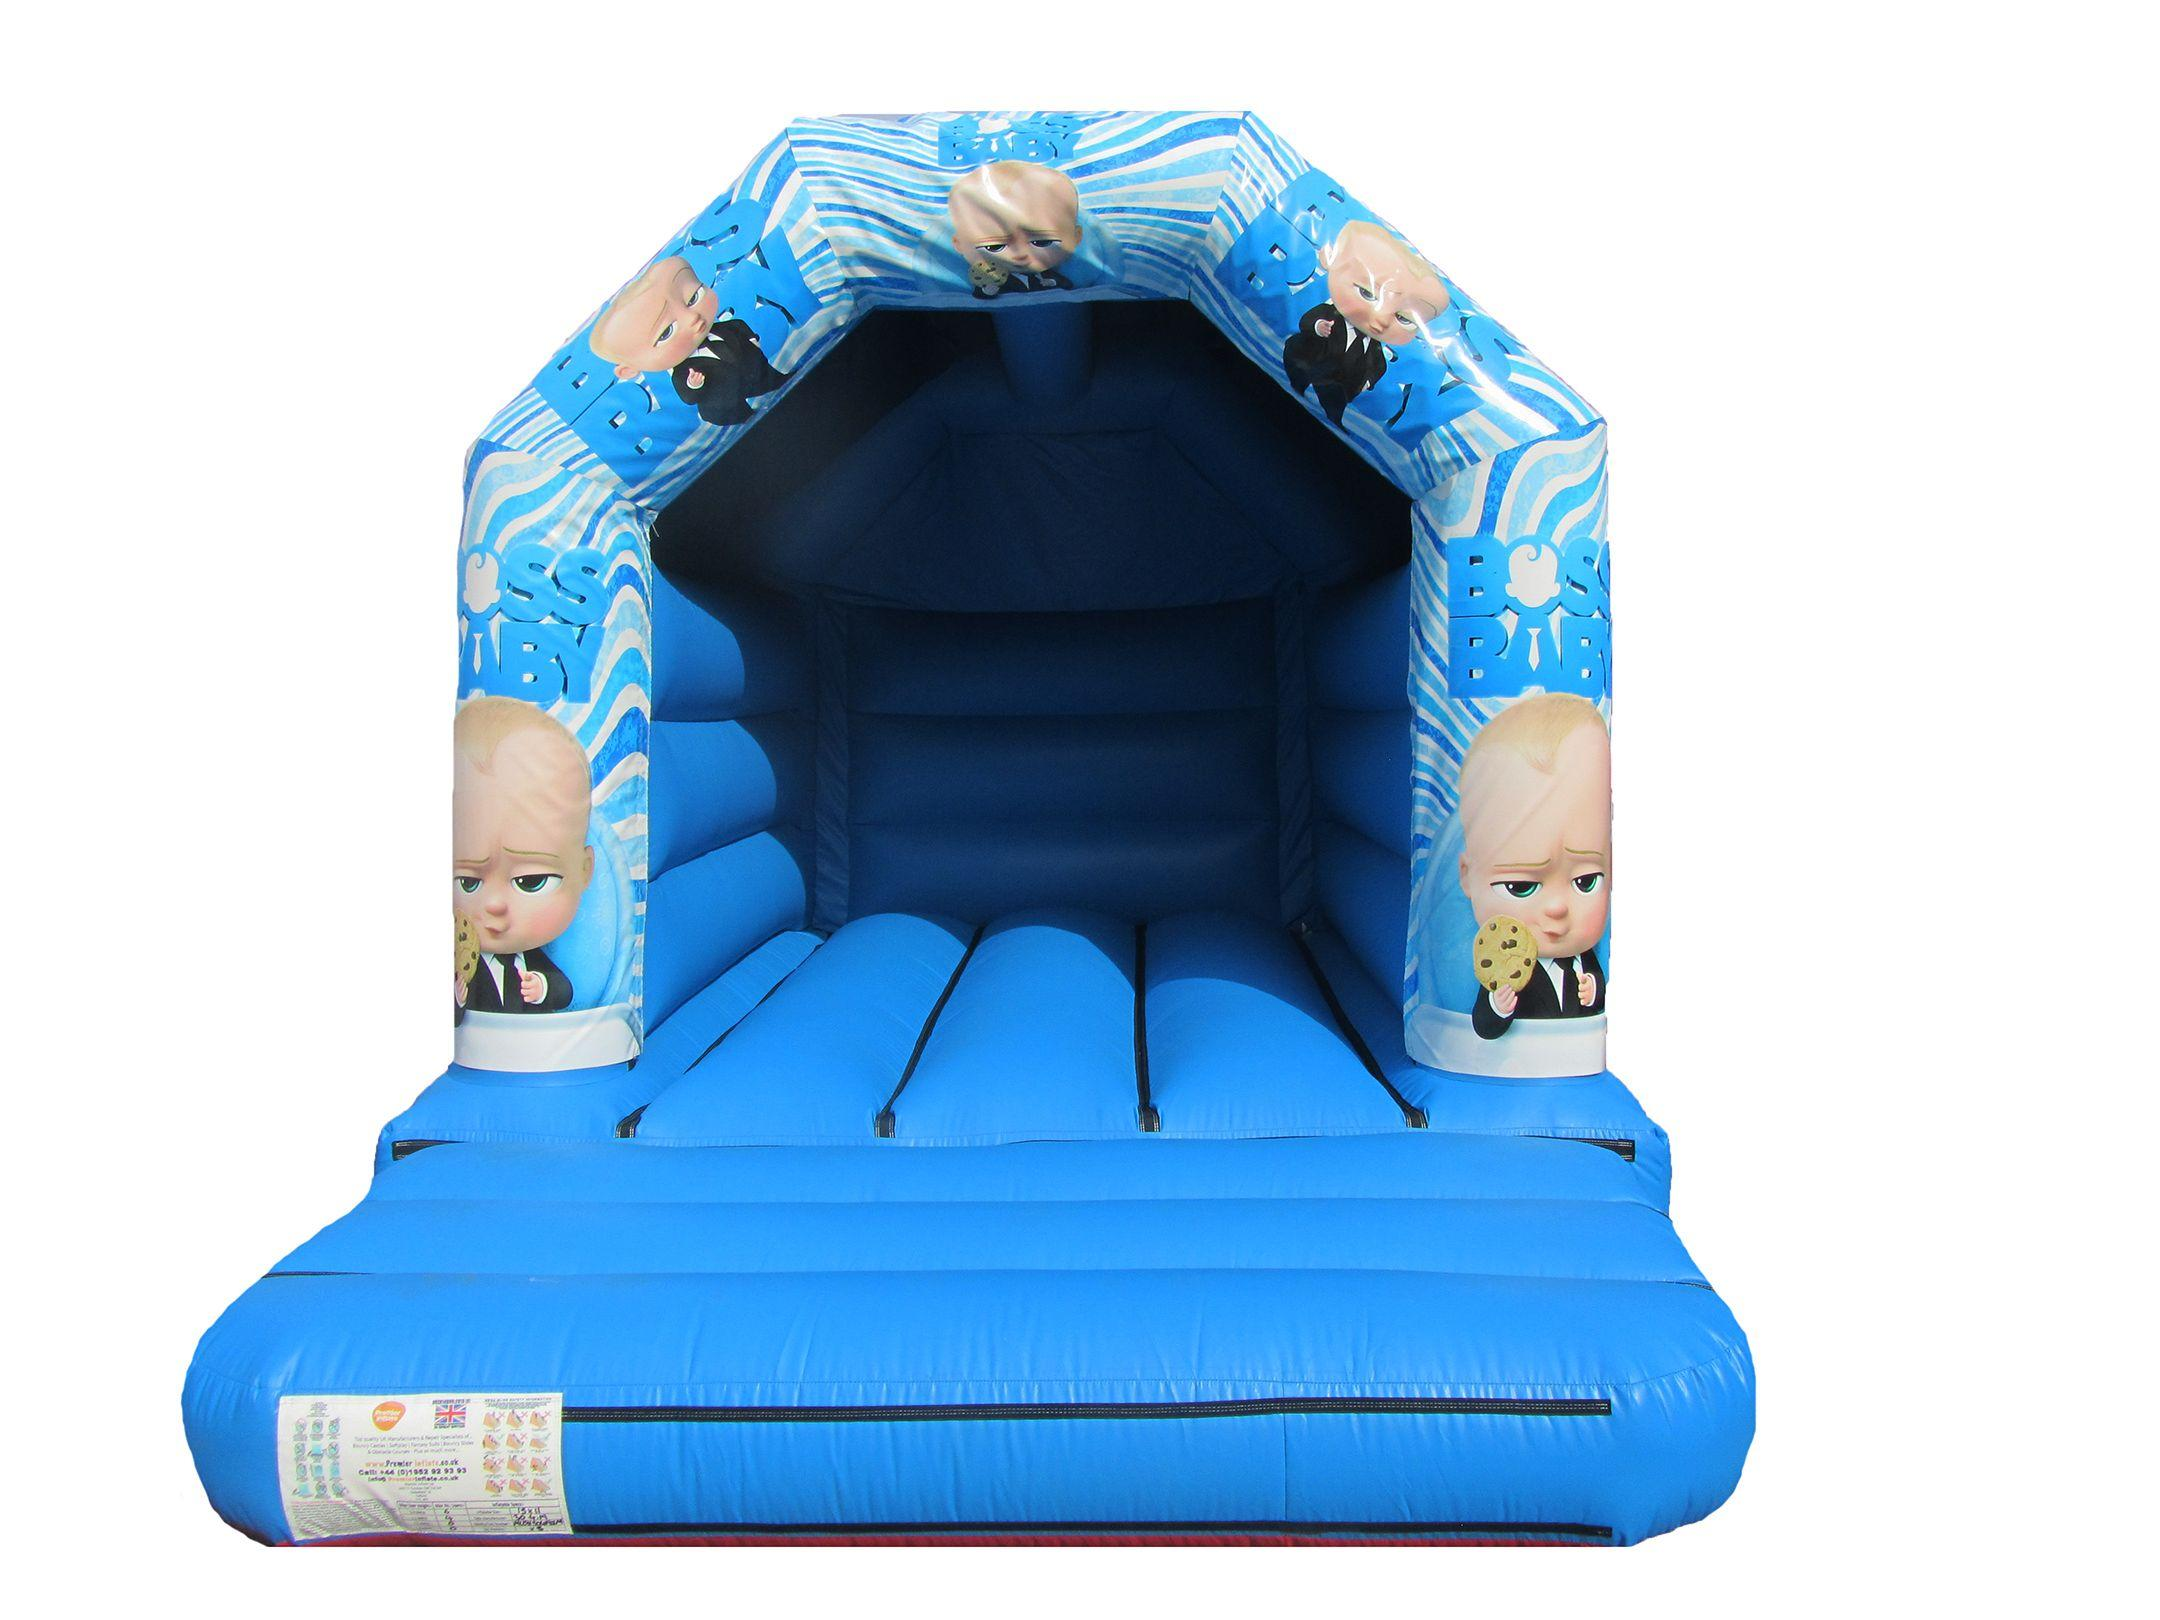 Commercial Children's Bouncy Castle for Sale